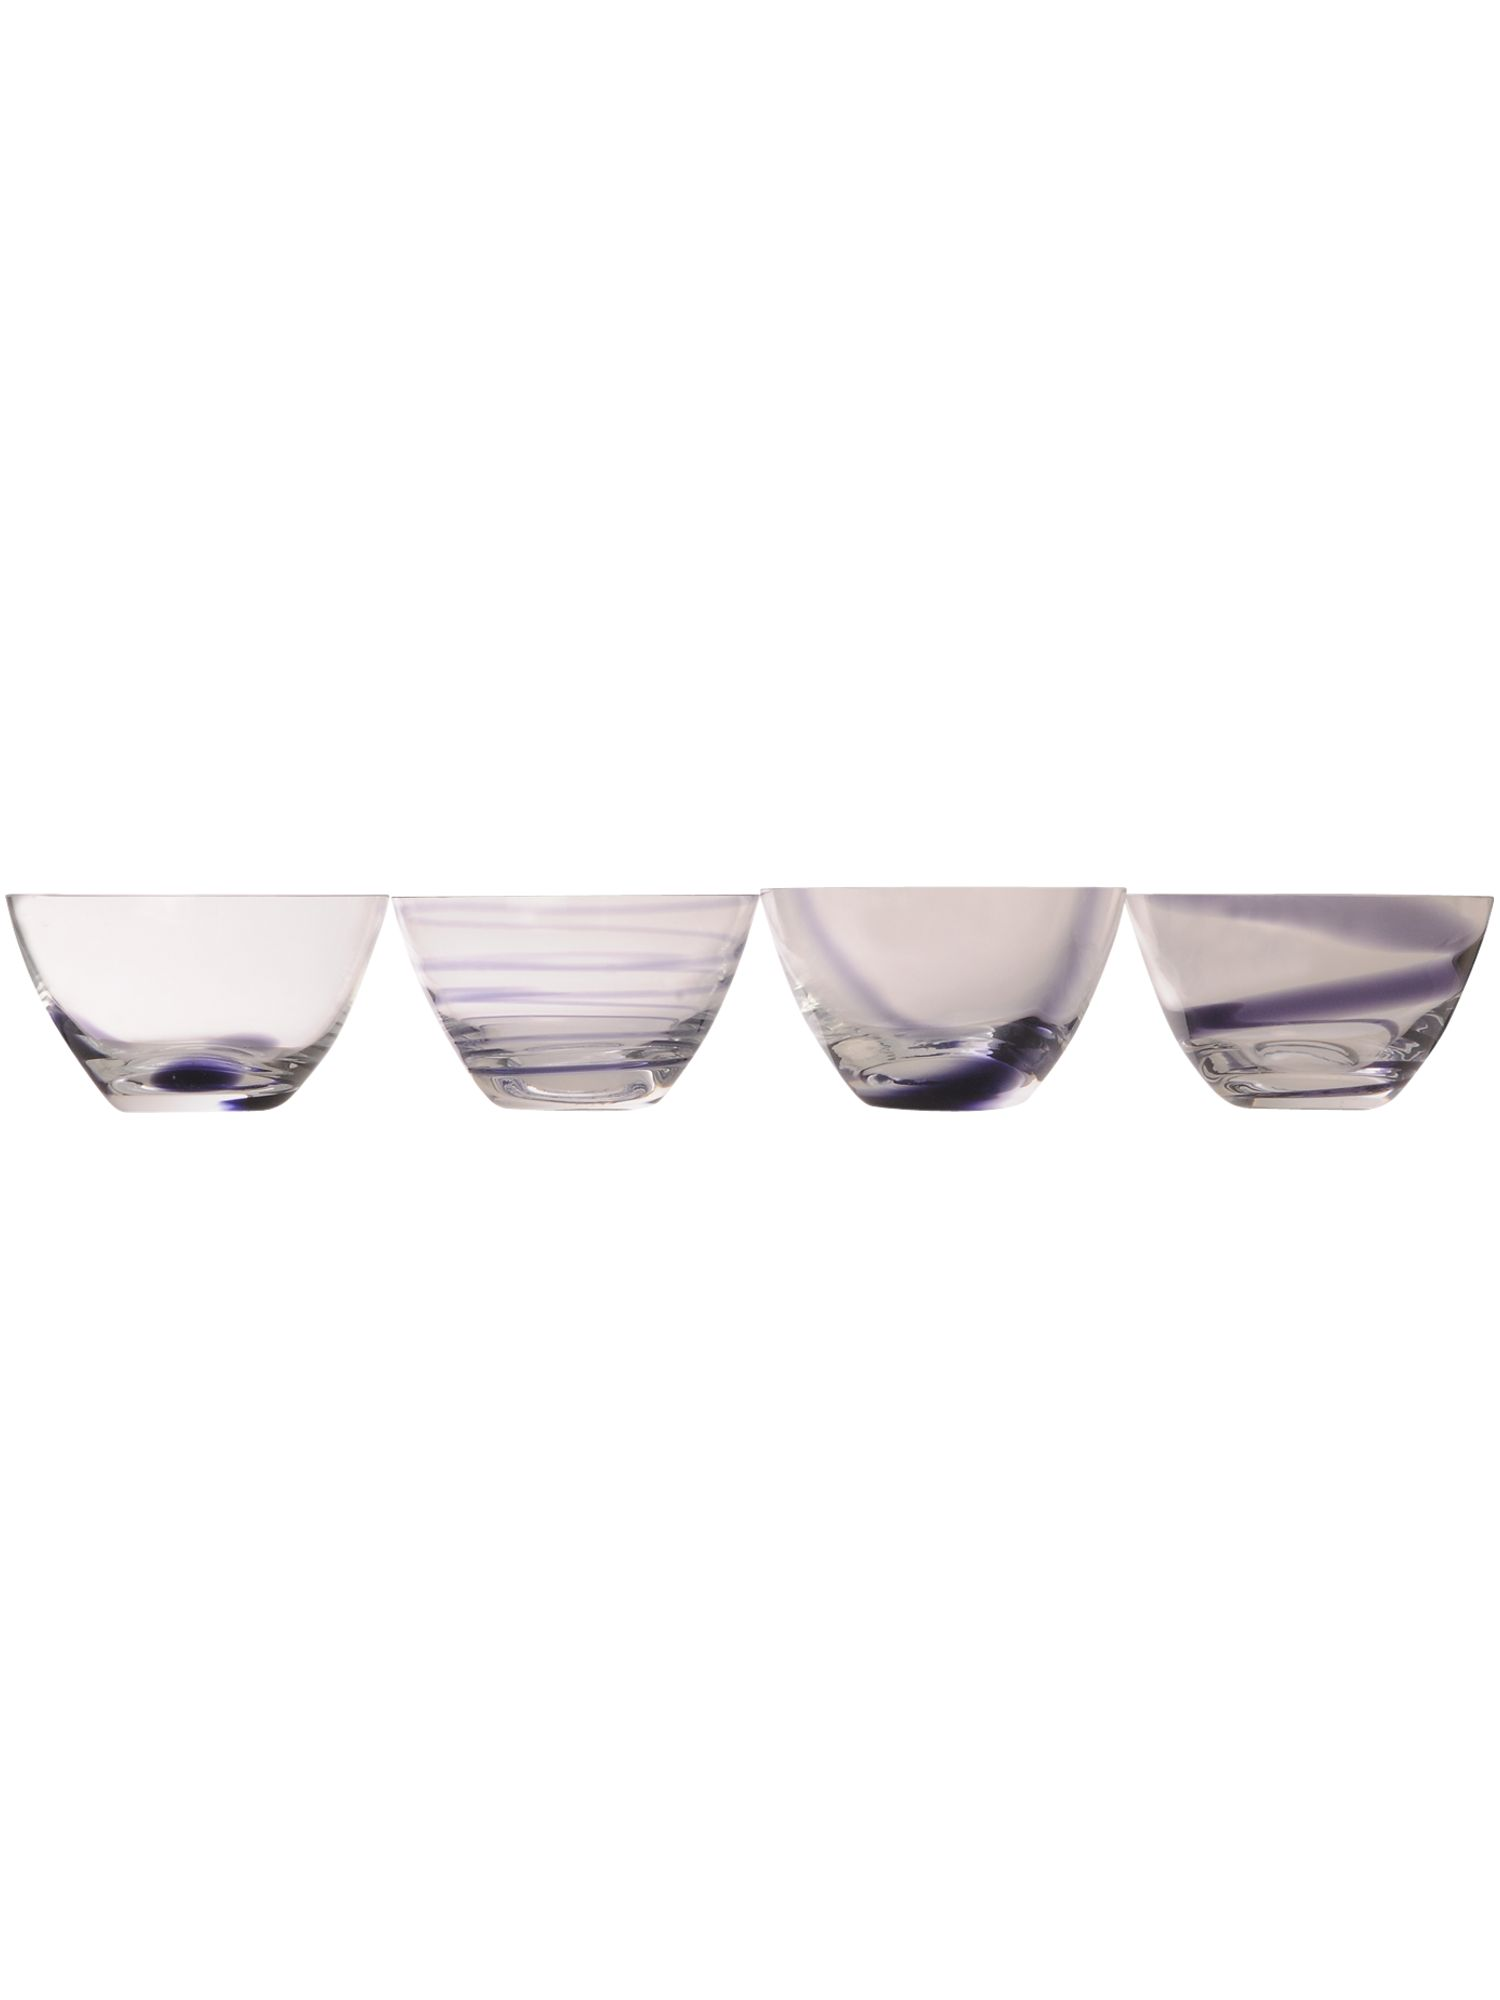 Jazz set of four small bowls